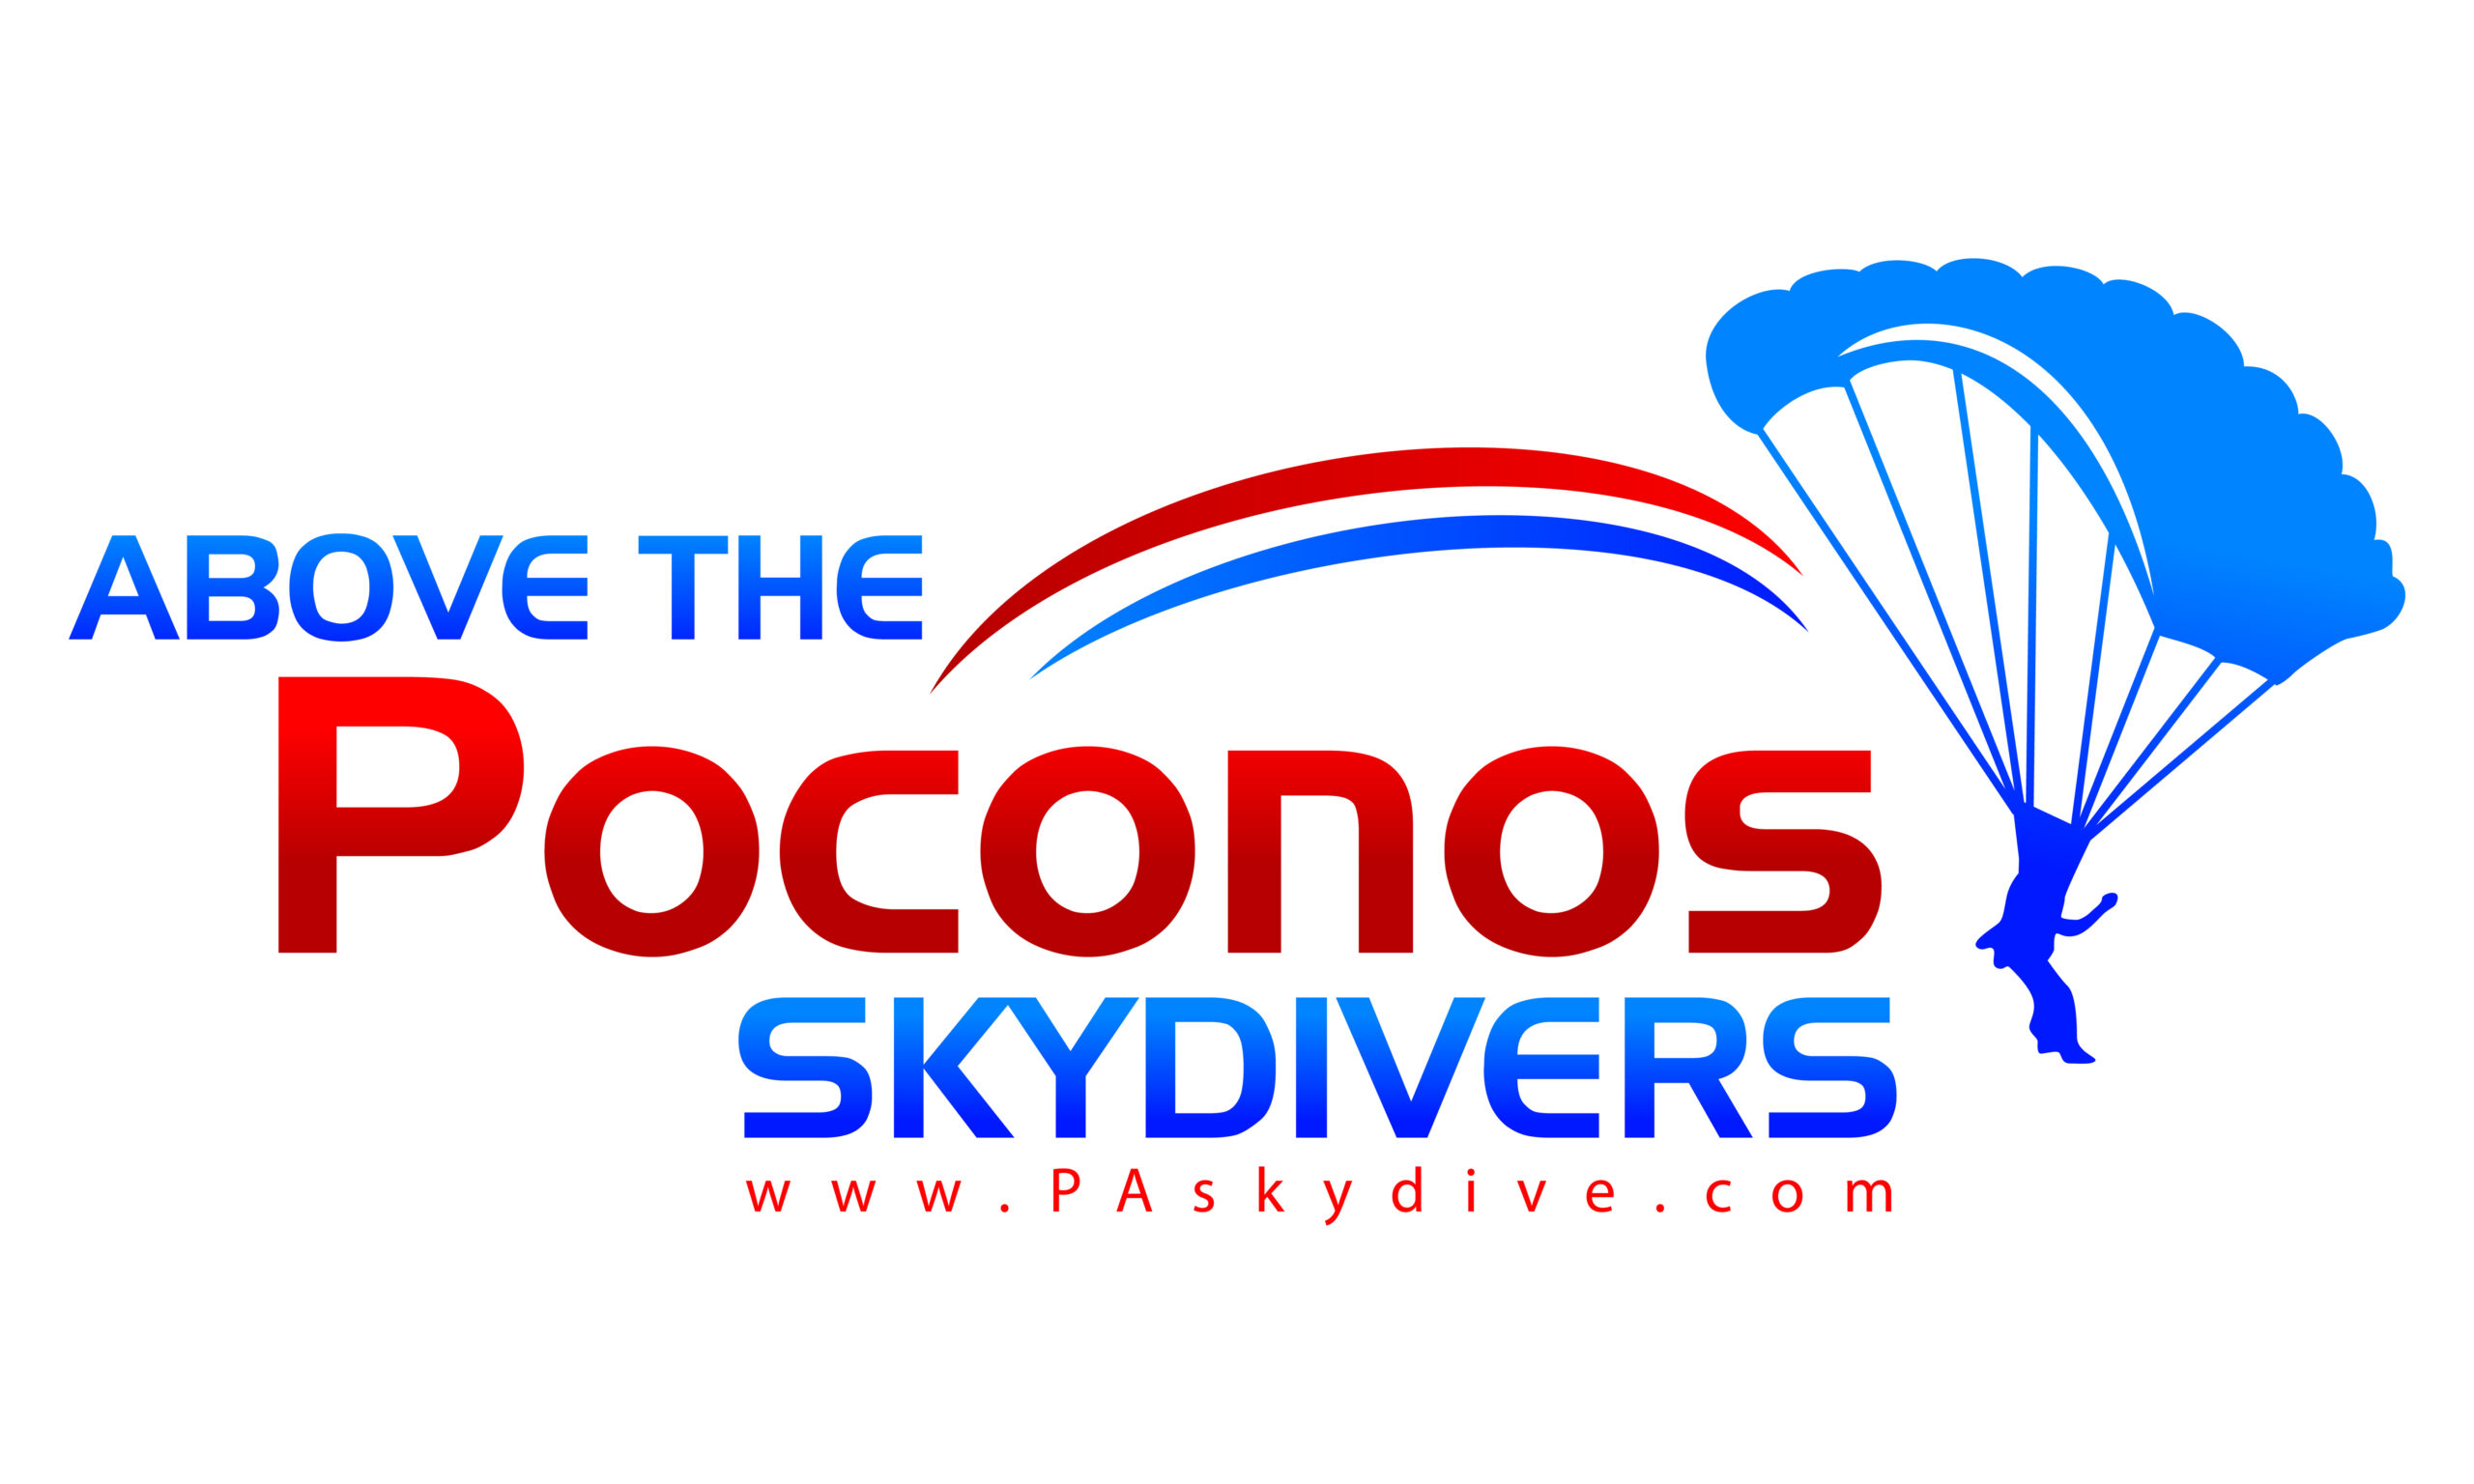 Above the Poconos Skydivers